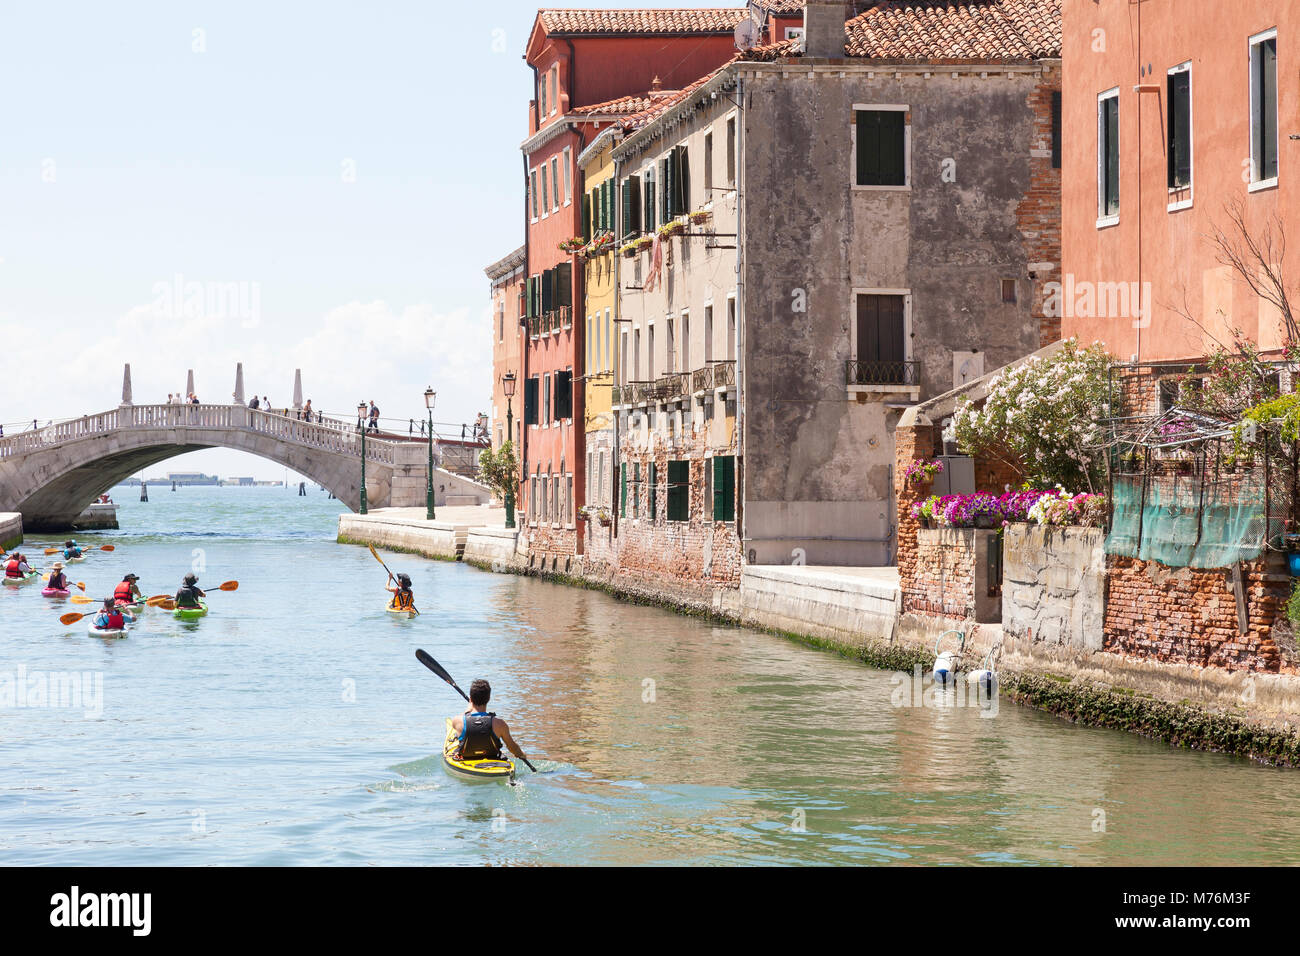 Group of kayakers  in colorful rented canoes or kayaks paddling down Rio de l'Arsenal,  Castello, Venice, Veneto, - Stock Image